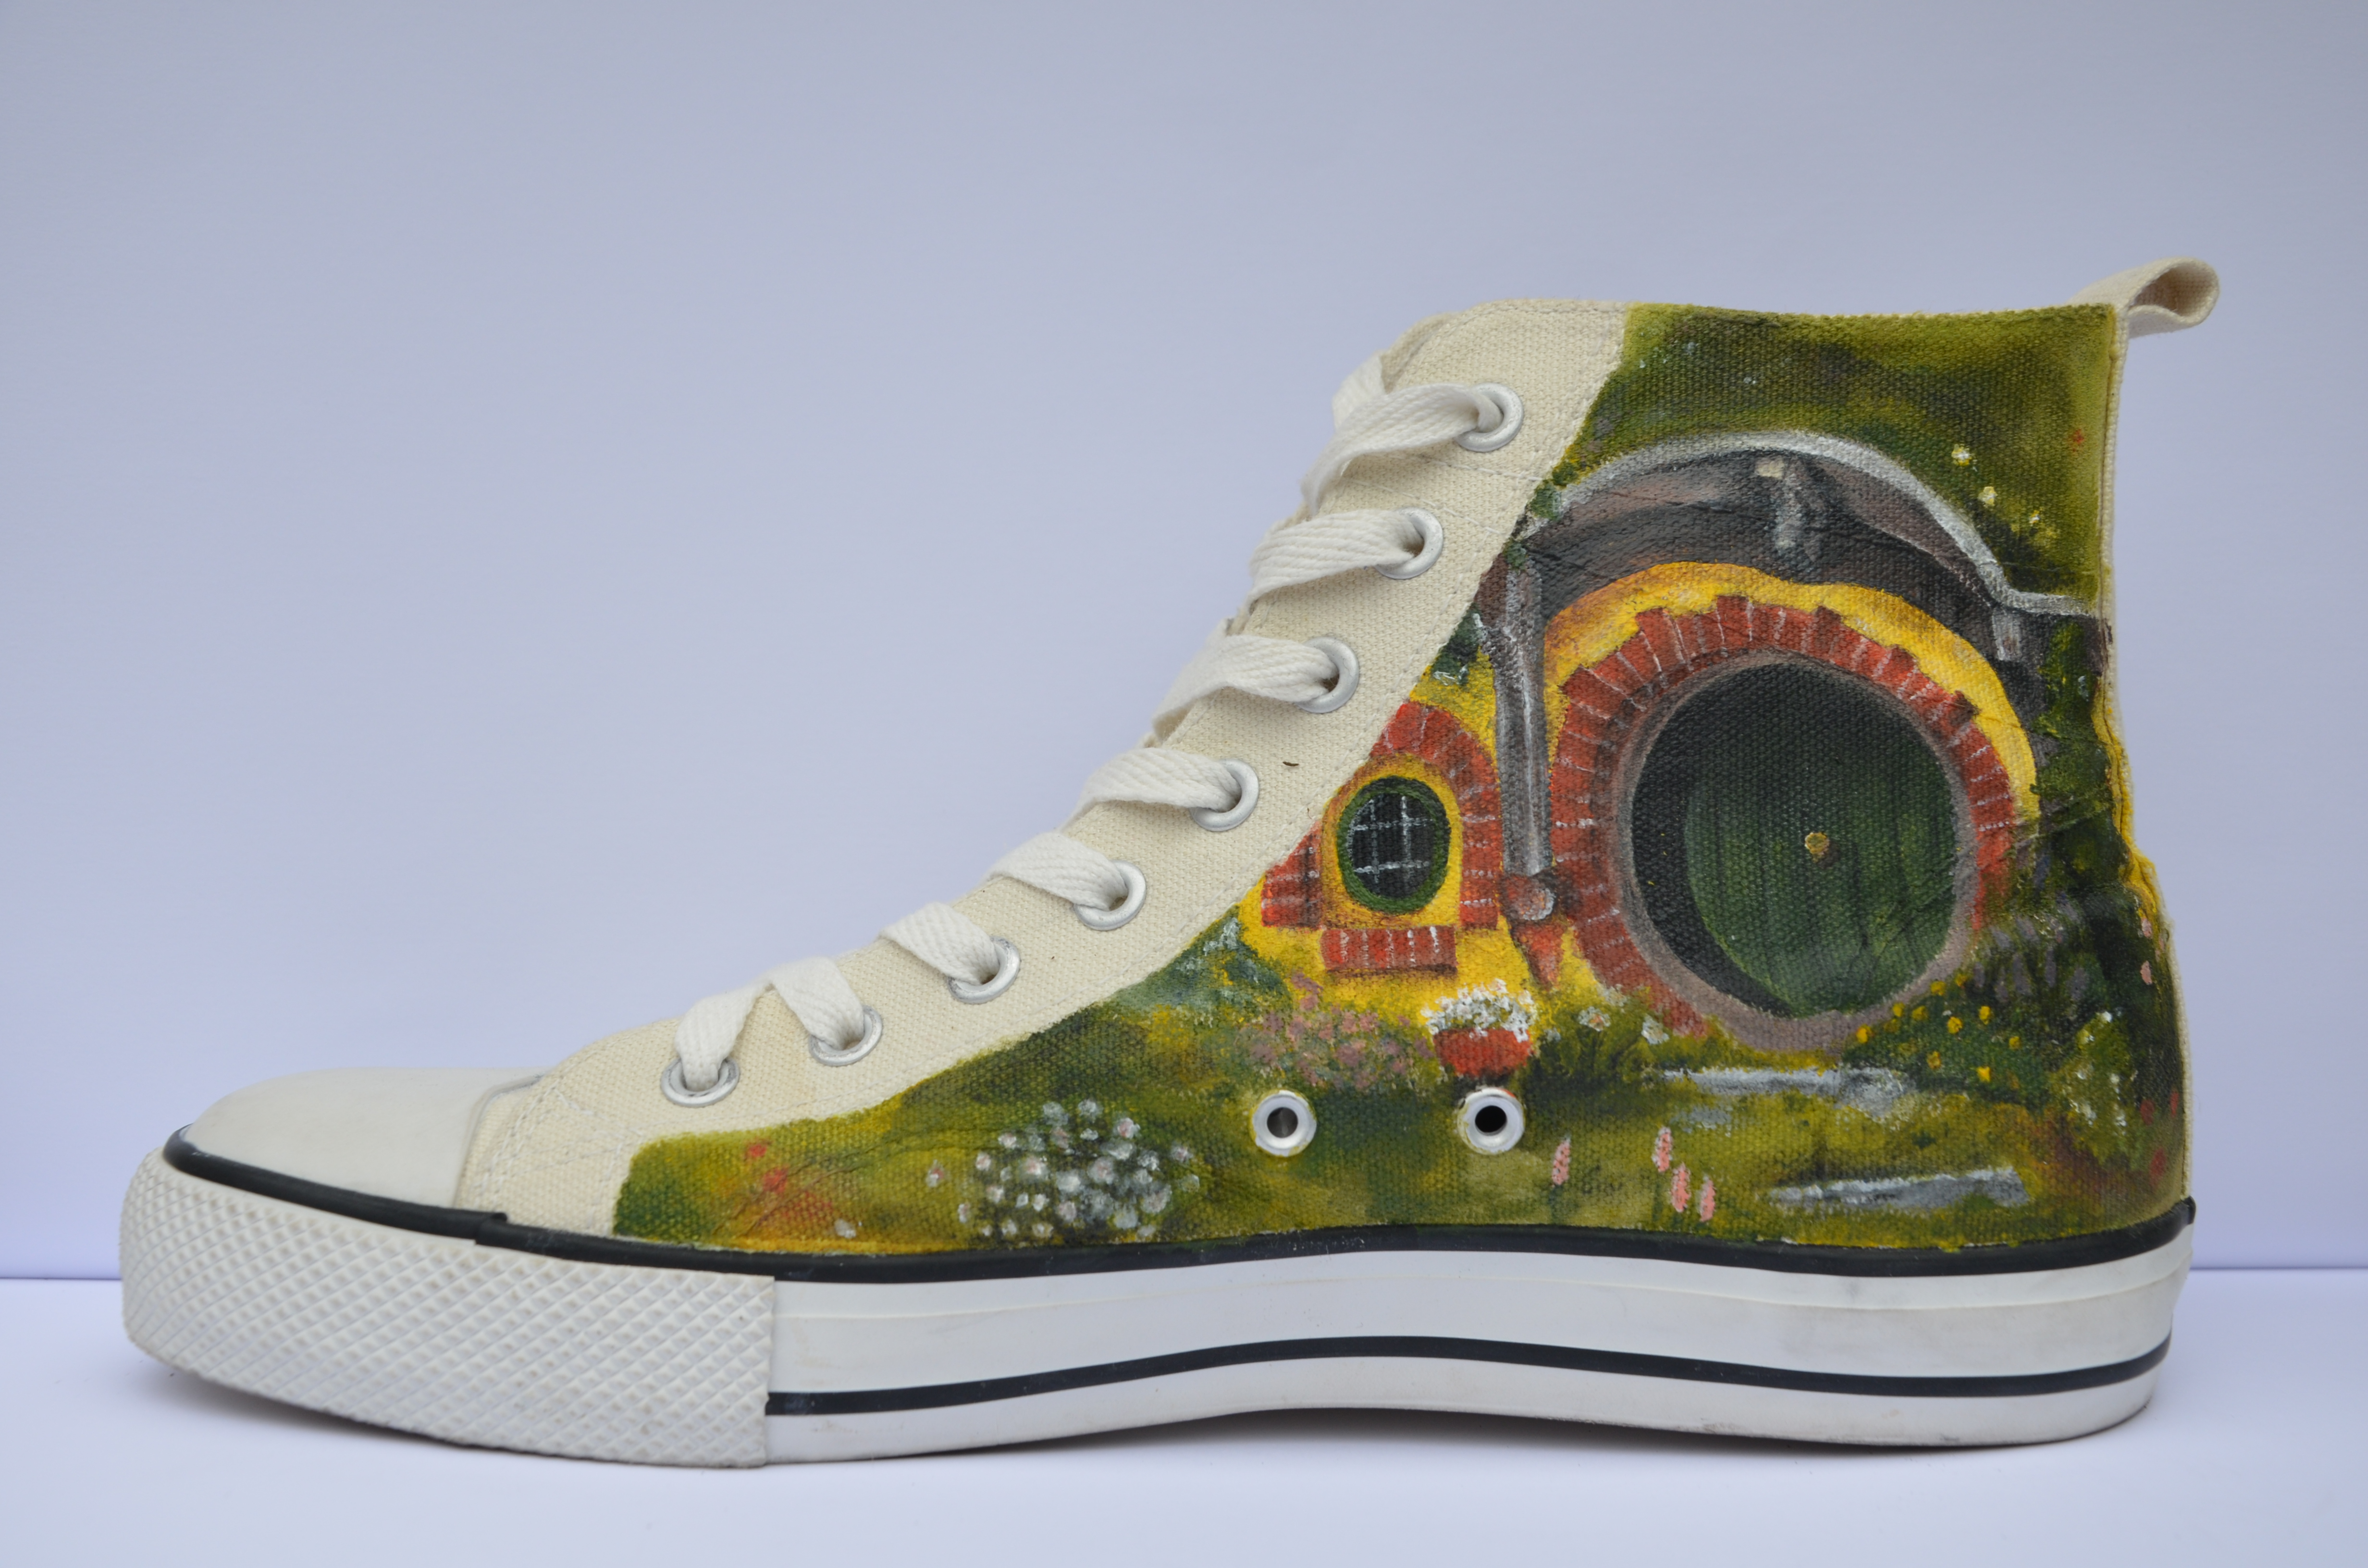 Lord of the Rings/ Hobbit shoes